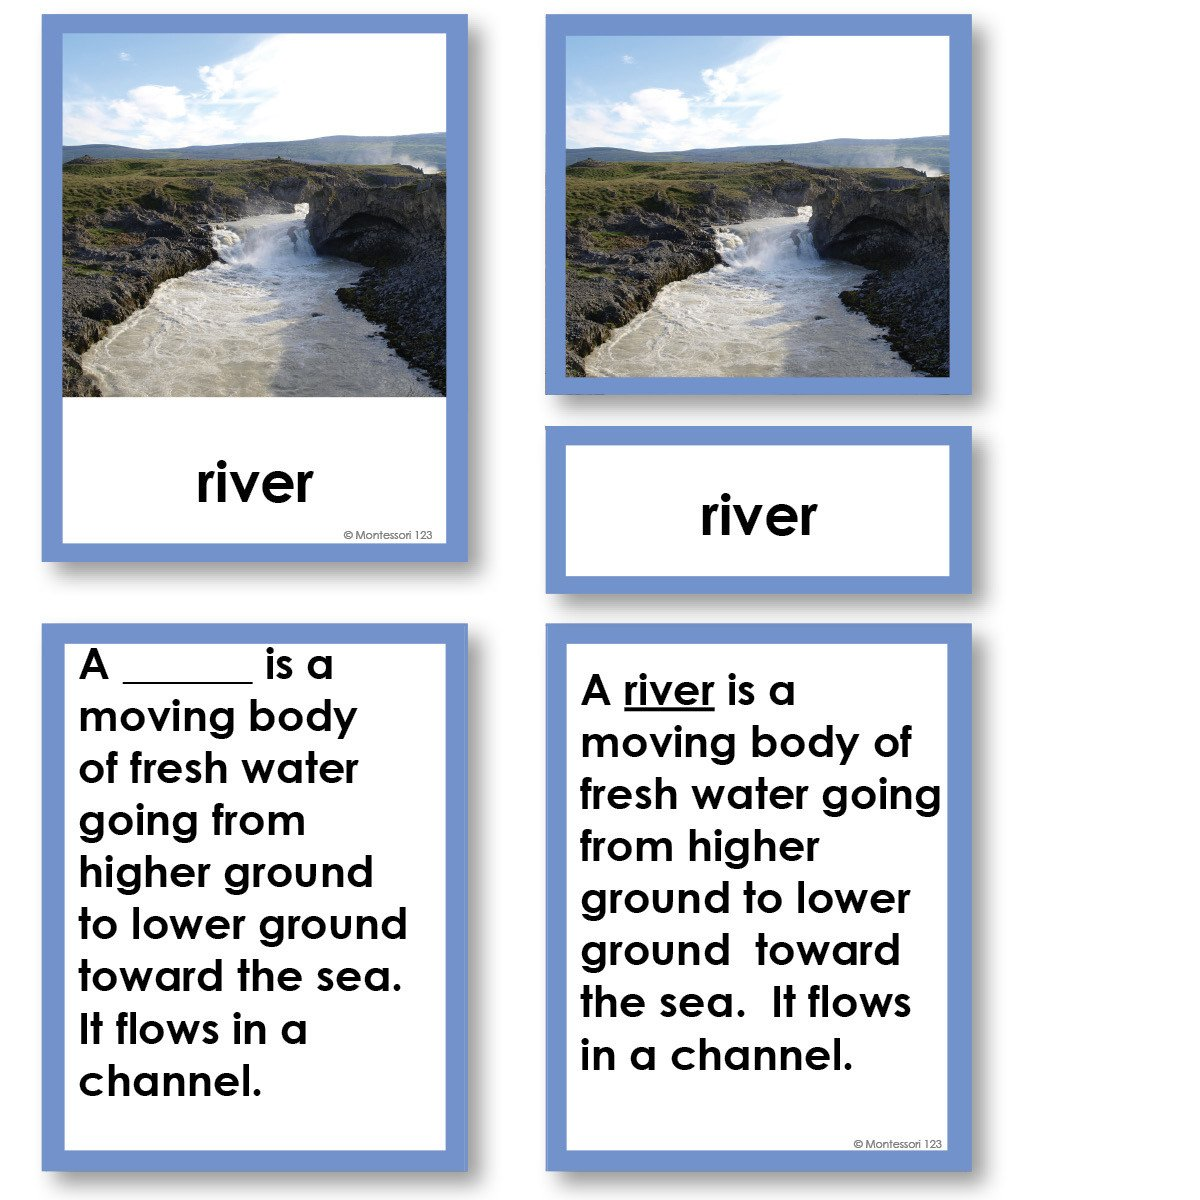 Geography Material-Landforms & Biomes - Parts Of A River 3-Part Cards With Definitions